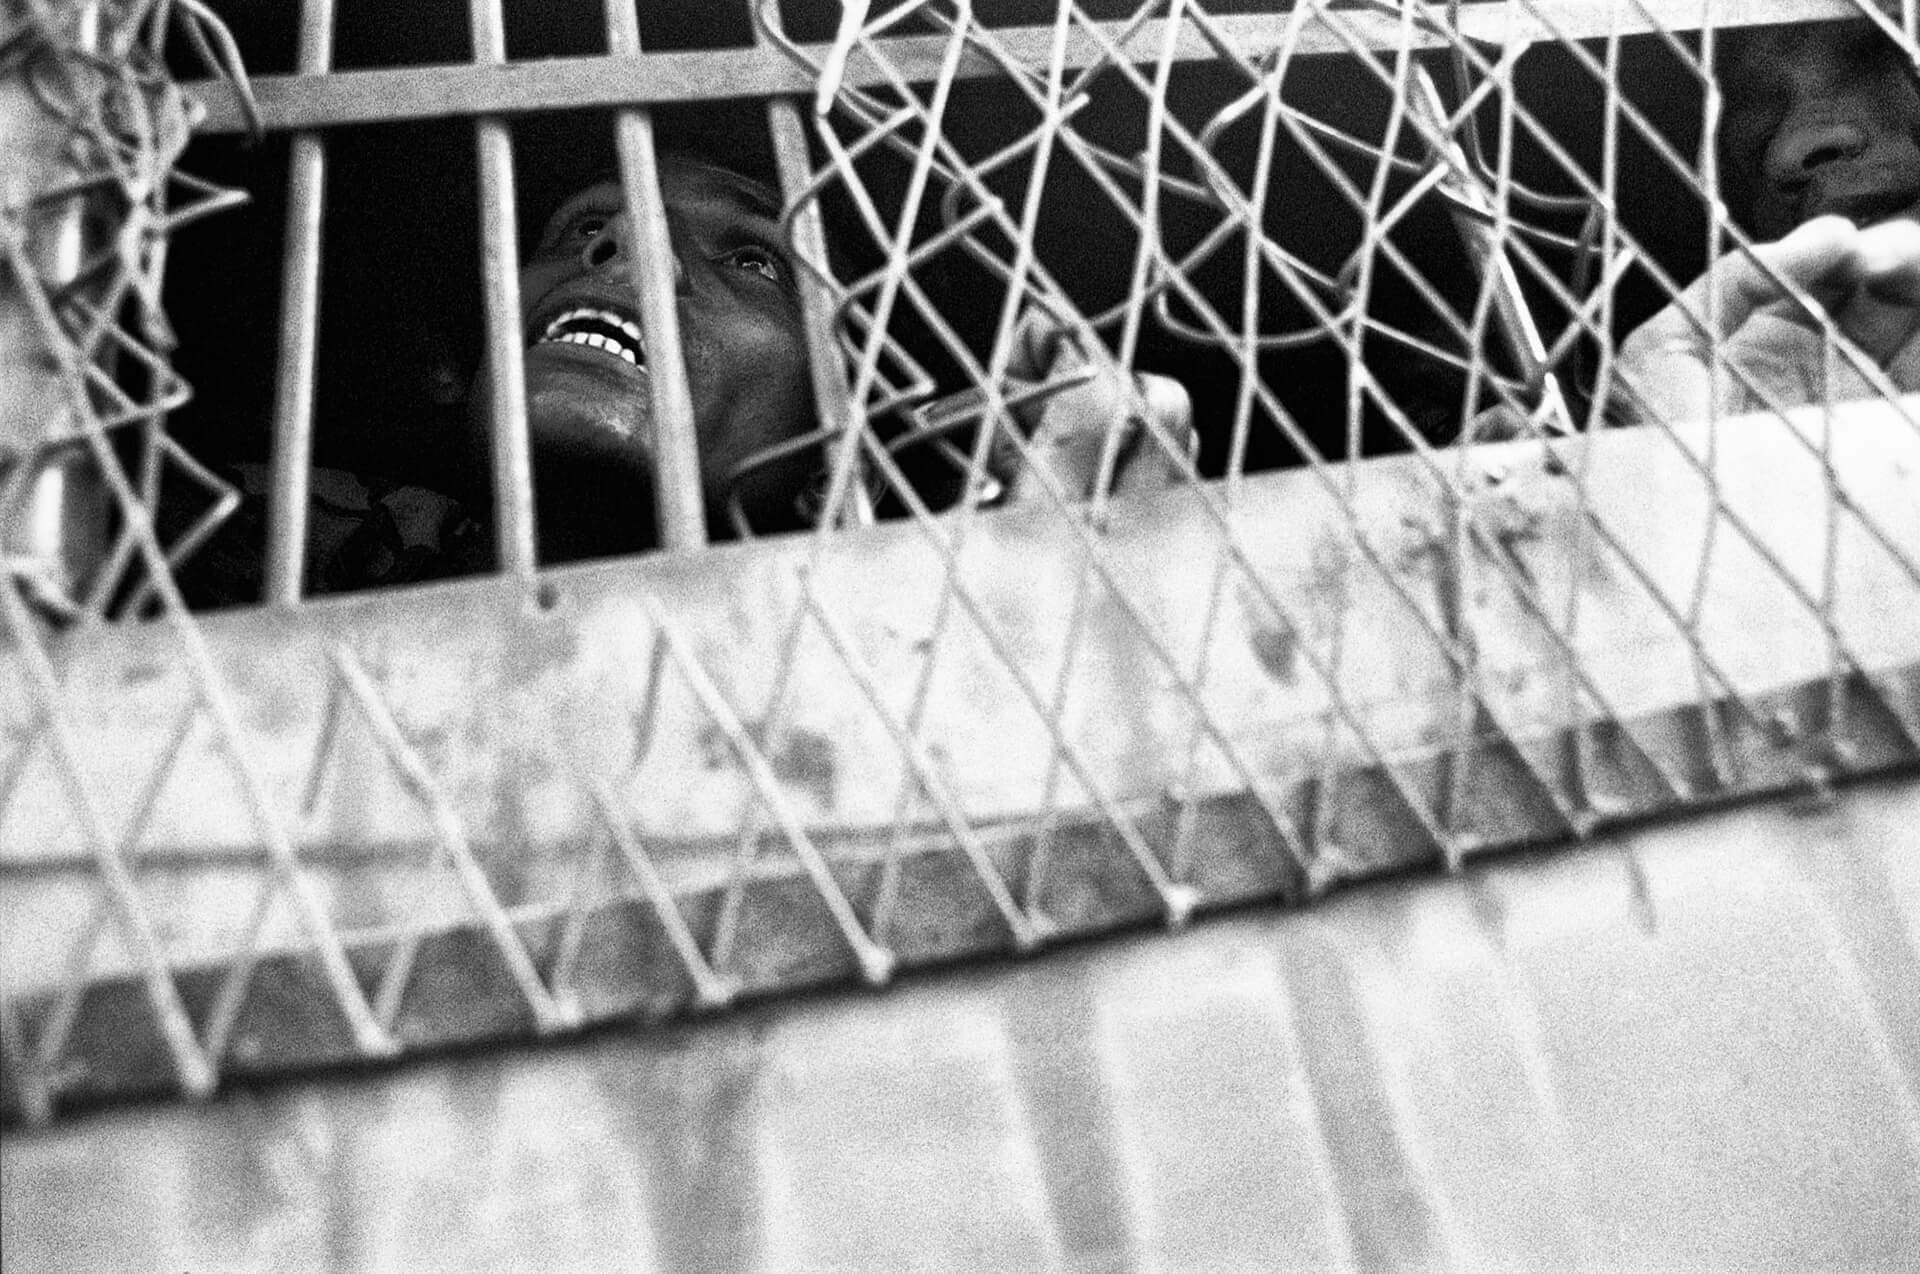 A student who had been picked up in a massive police raid, reaches out for help from the prison van | Shahidul Alam | World Photography Day | STIRworld